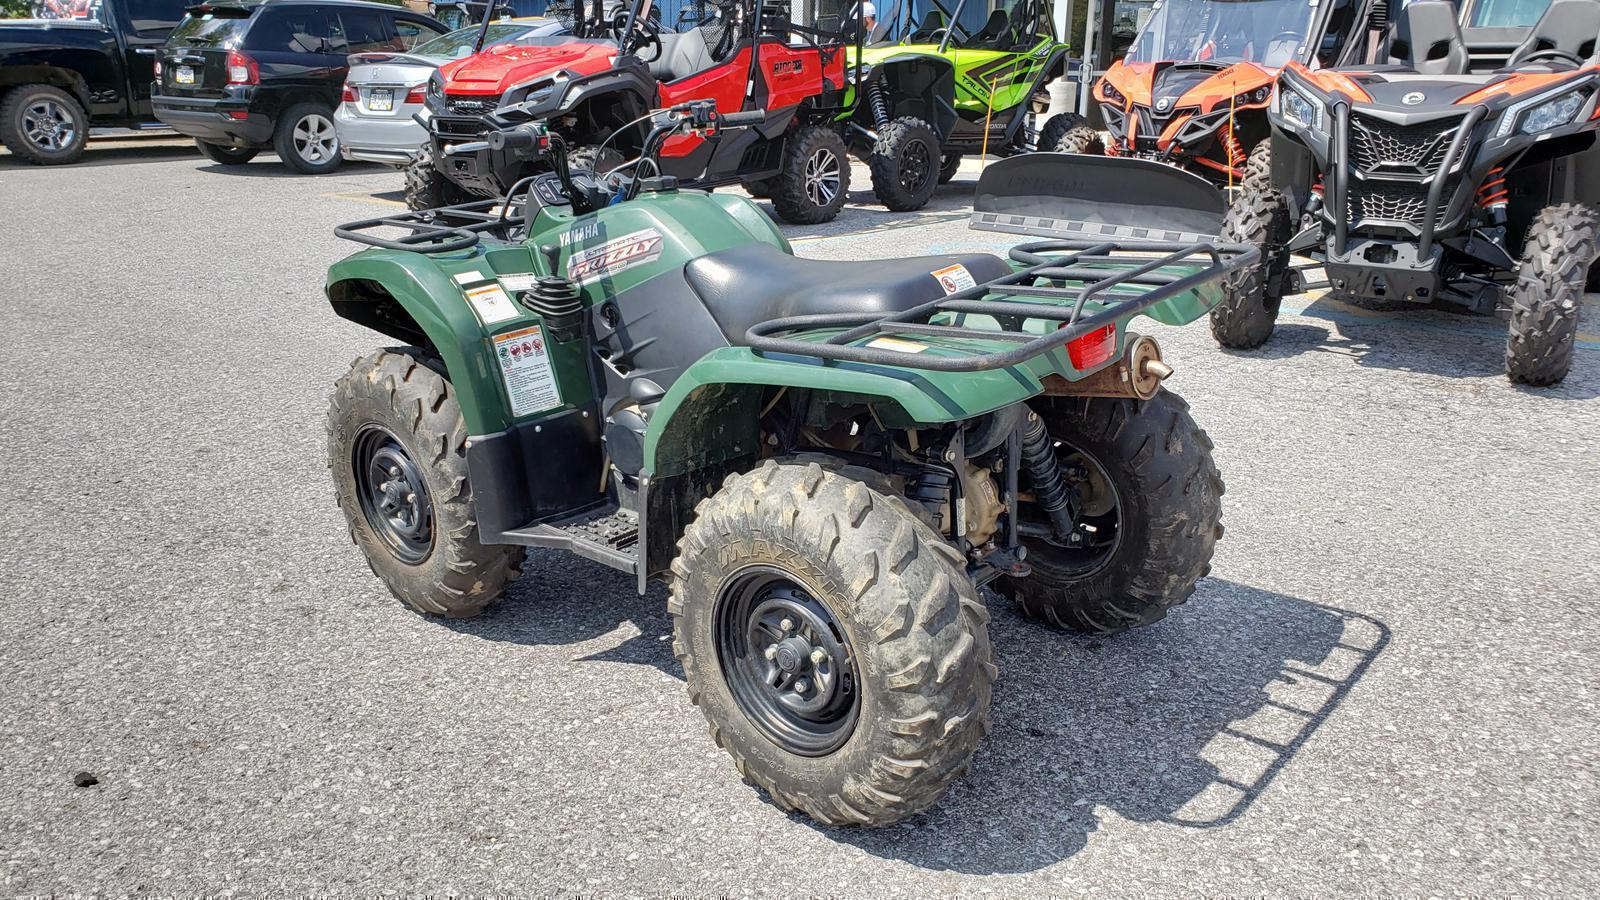 2012 Yamaha Grizzly 450 Auto  4x4 - Hunter Green for sale in